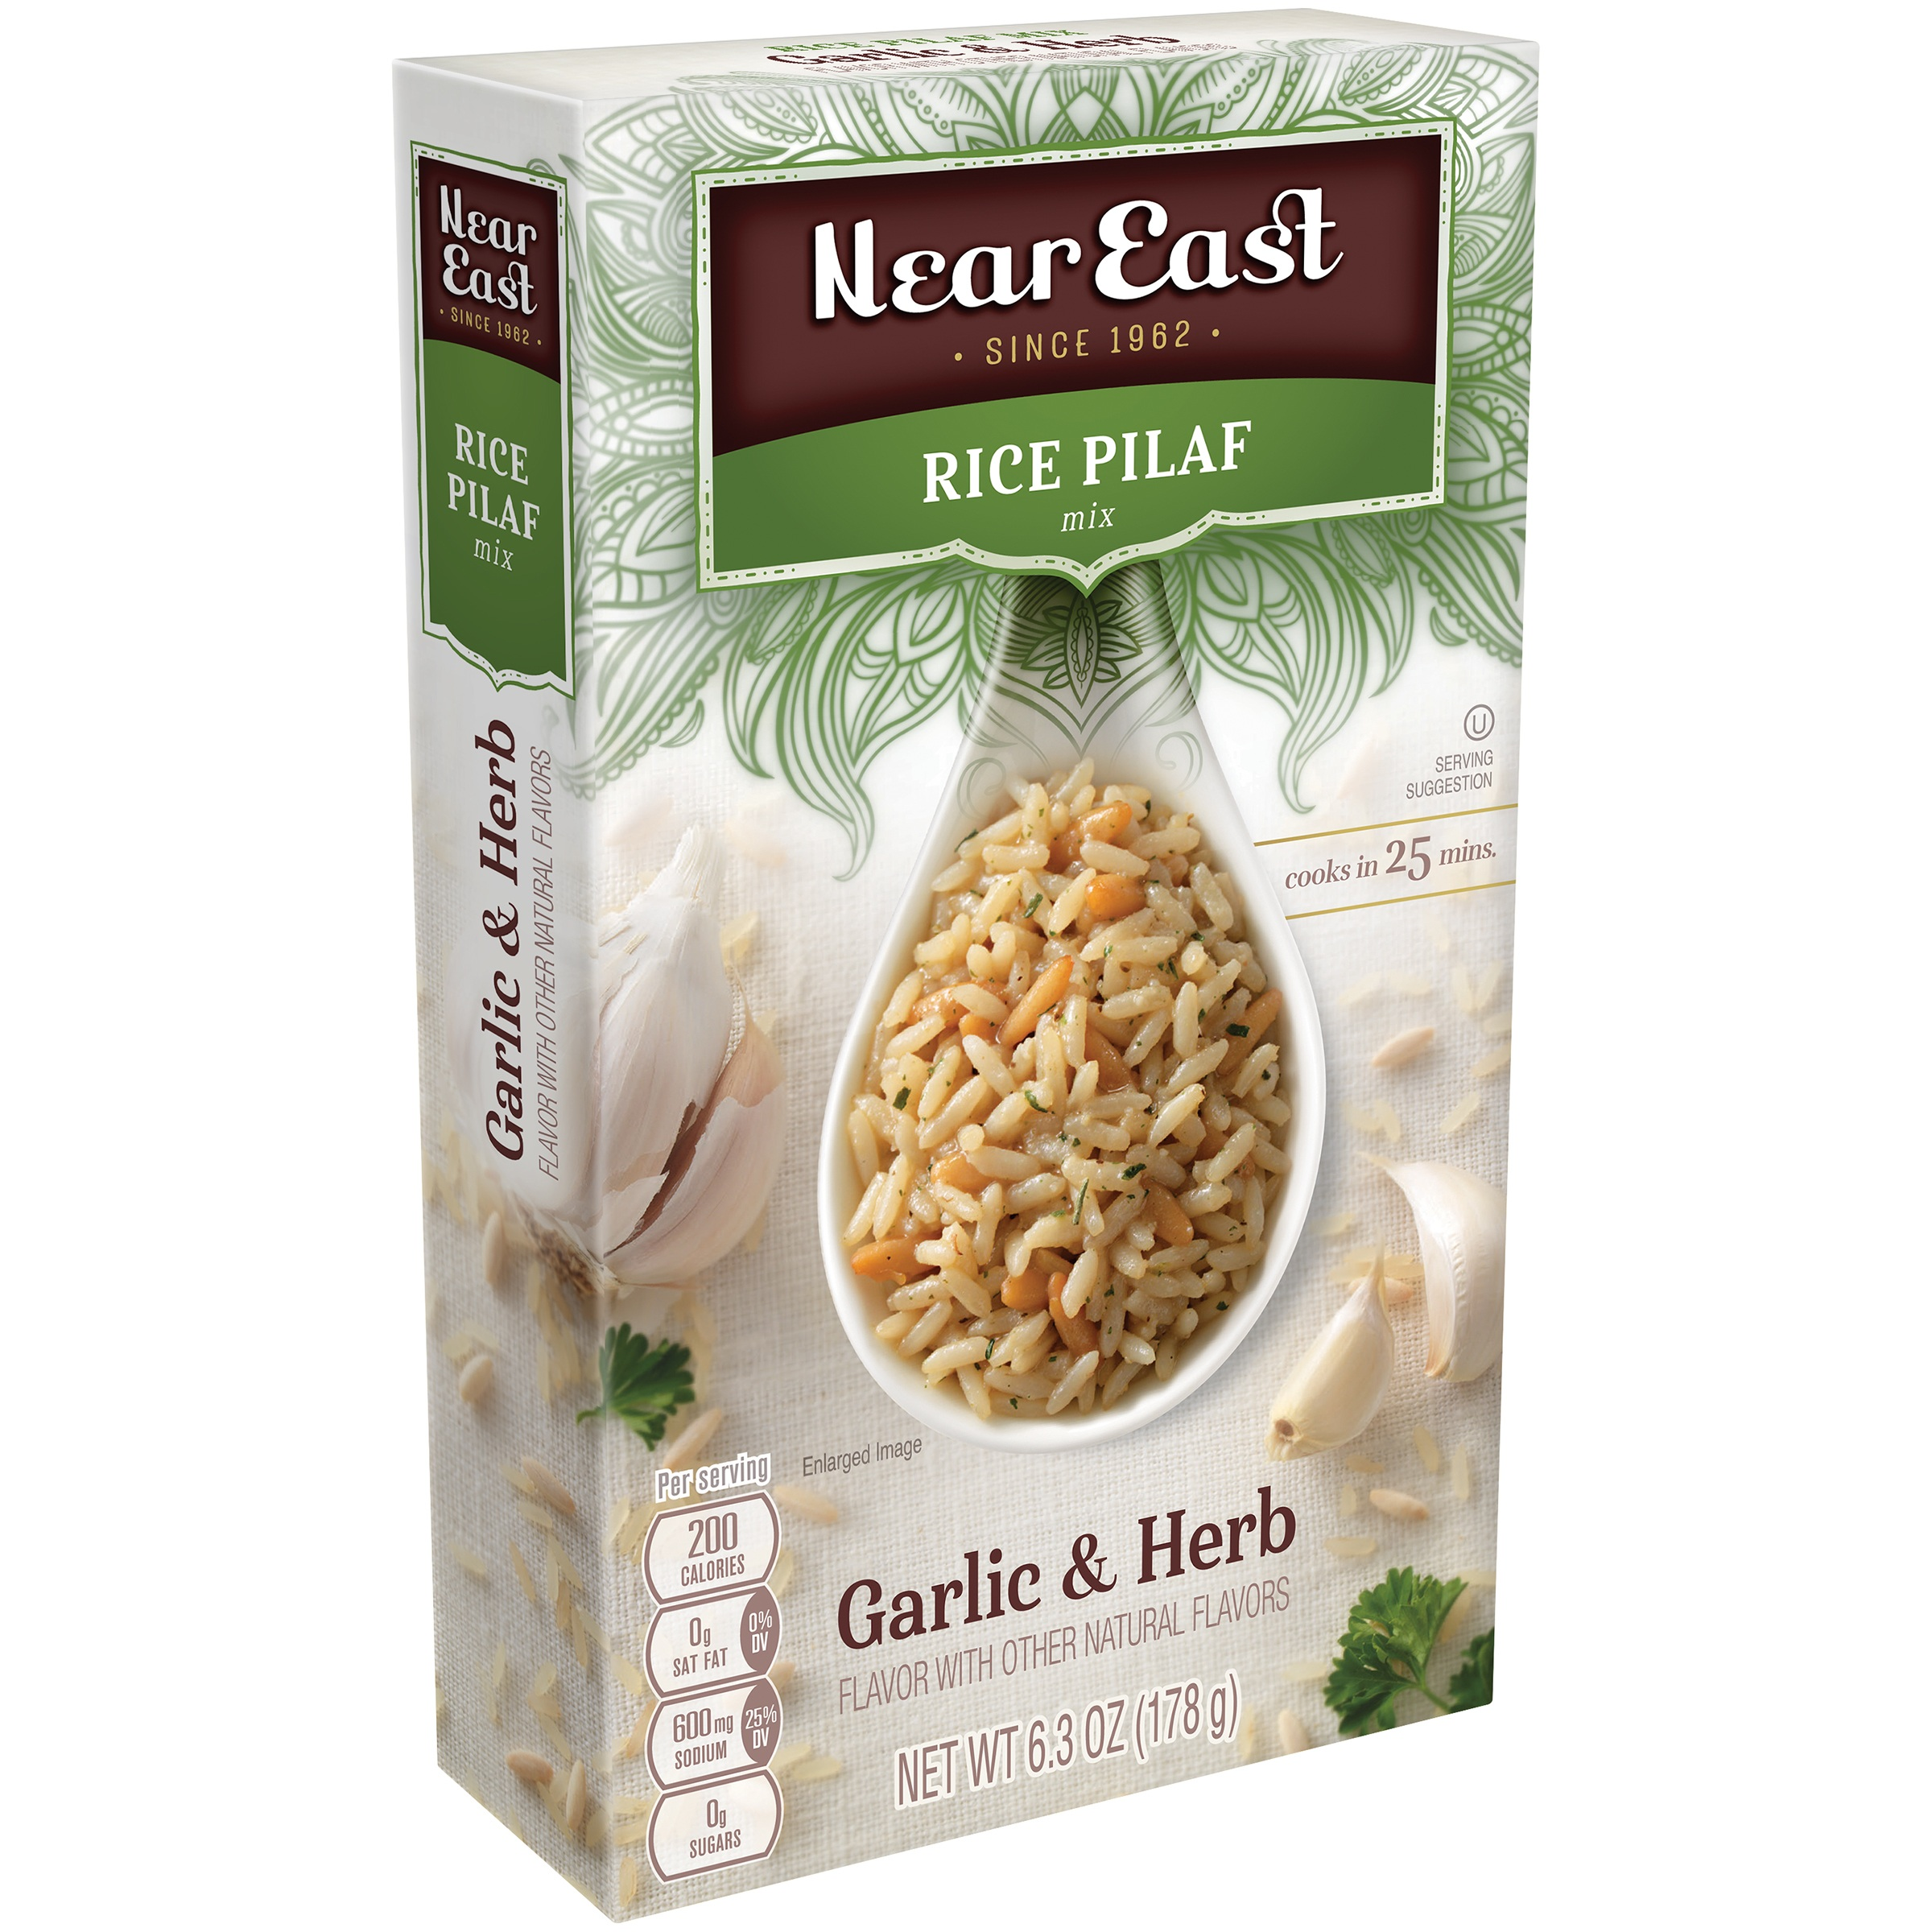 Near East Rice Pilaf Mix, Garlic & Herb, 6.3 oz. Box